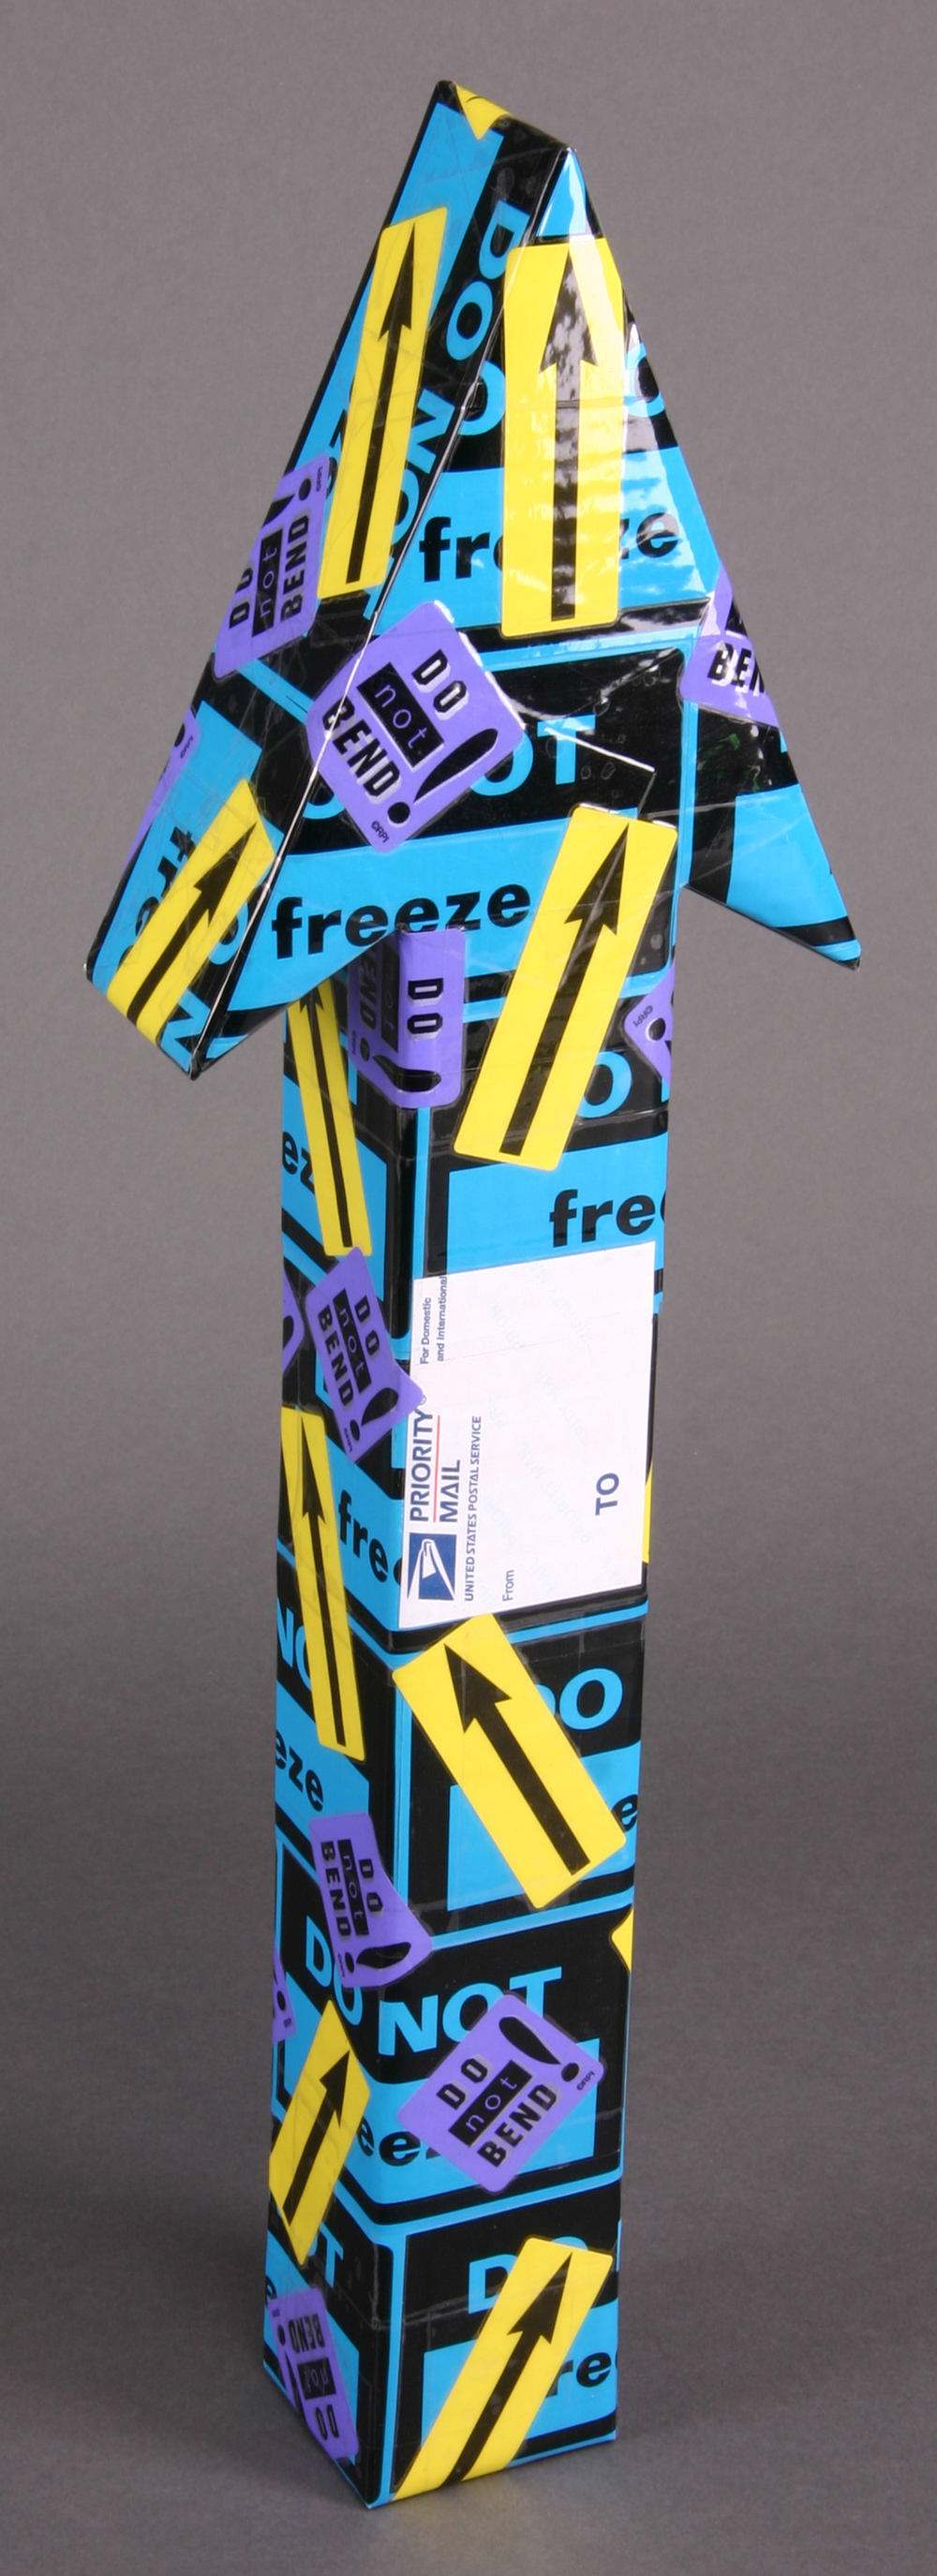 Blue Freeze voliet & yellow arrows.JPG